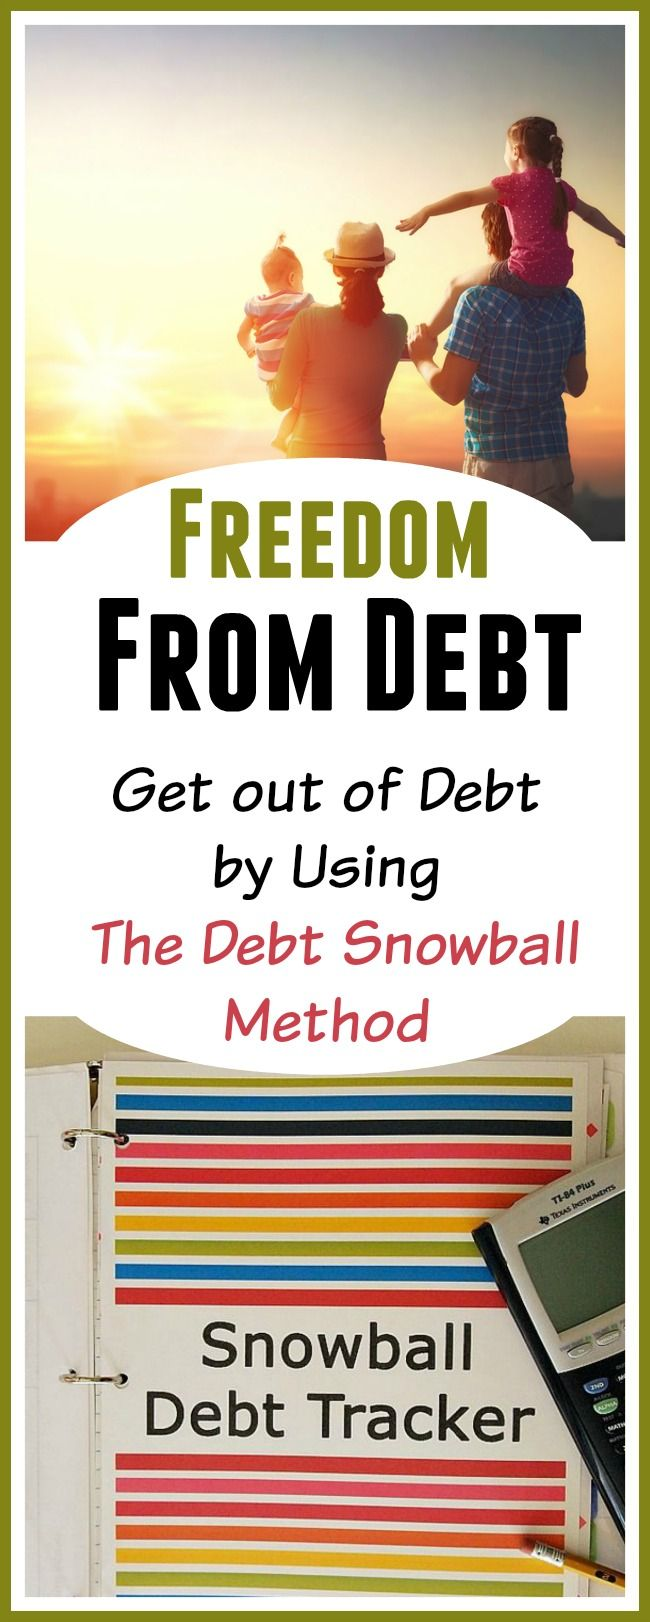 Get Out of Debt By Using The Debt Snowball Method - Are you trying to pay down debt but you're not getting anywhere? Consider using the debt snowball system to get rid of your debt for good. Here's how it works and also a list of Debt Snowball Calculators that you can use. | Budgeting | How to get out of debt | Paying off bills | Financial Freedom